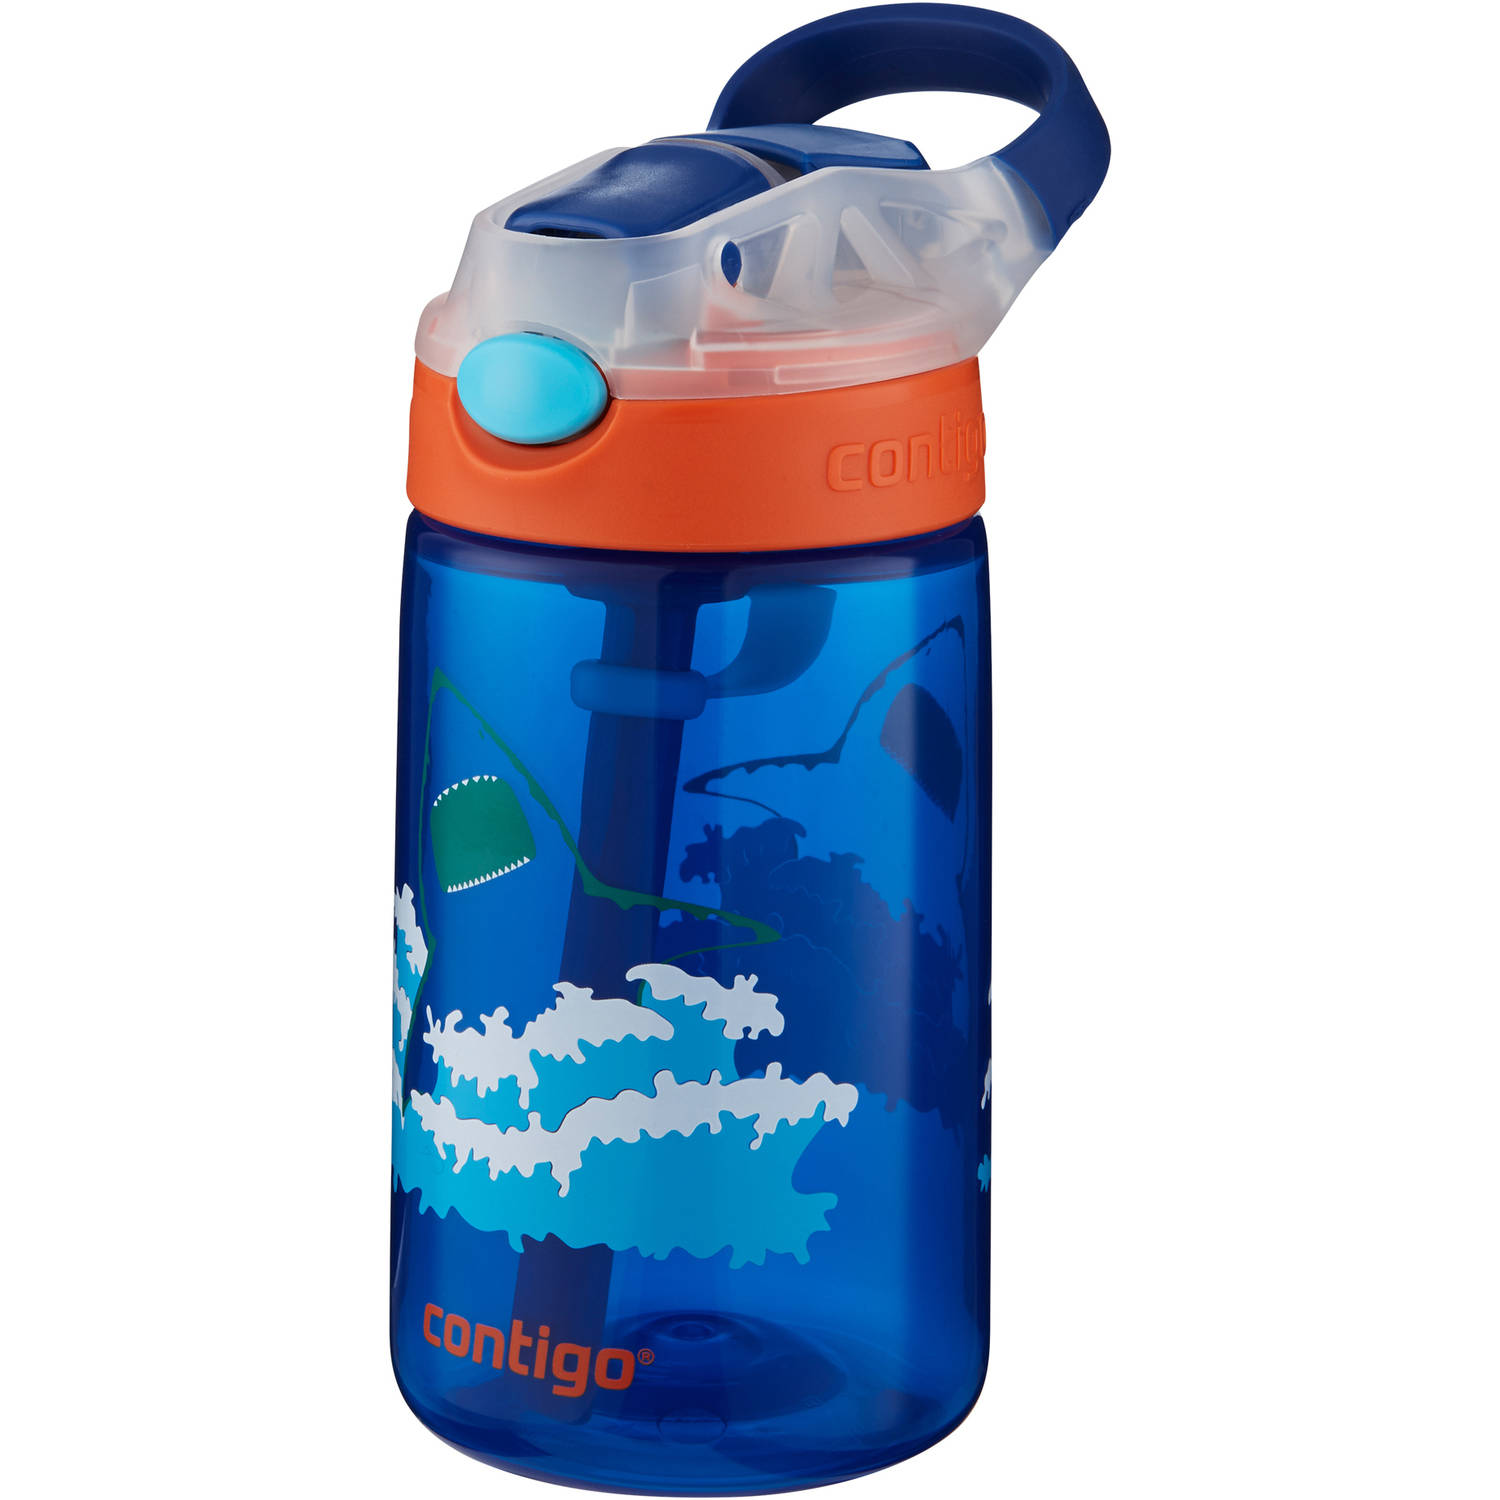 Contigo Gizmo Flip 14 Oz Kids Water Bottle, Shark Graphics